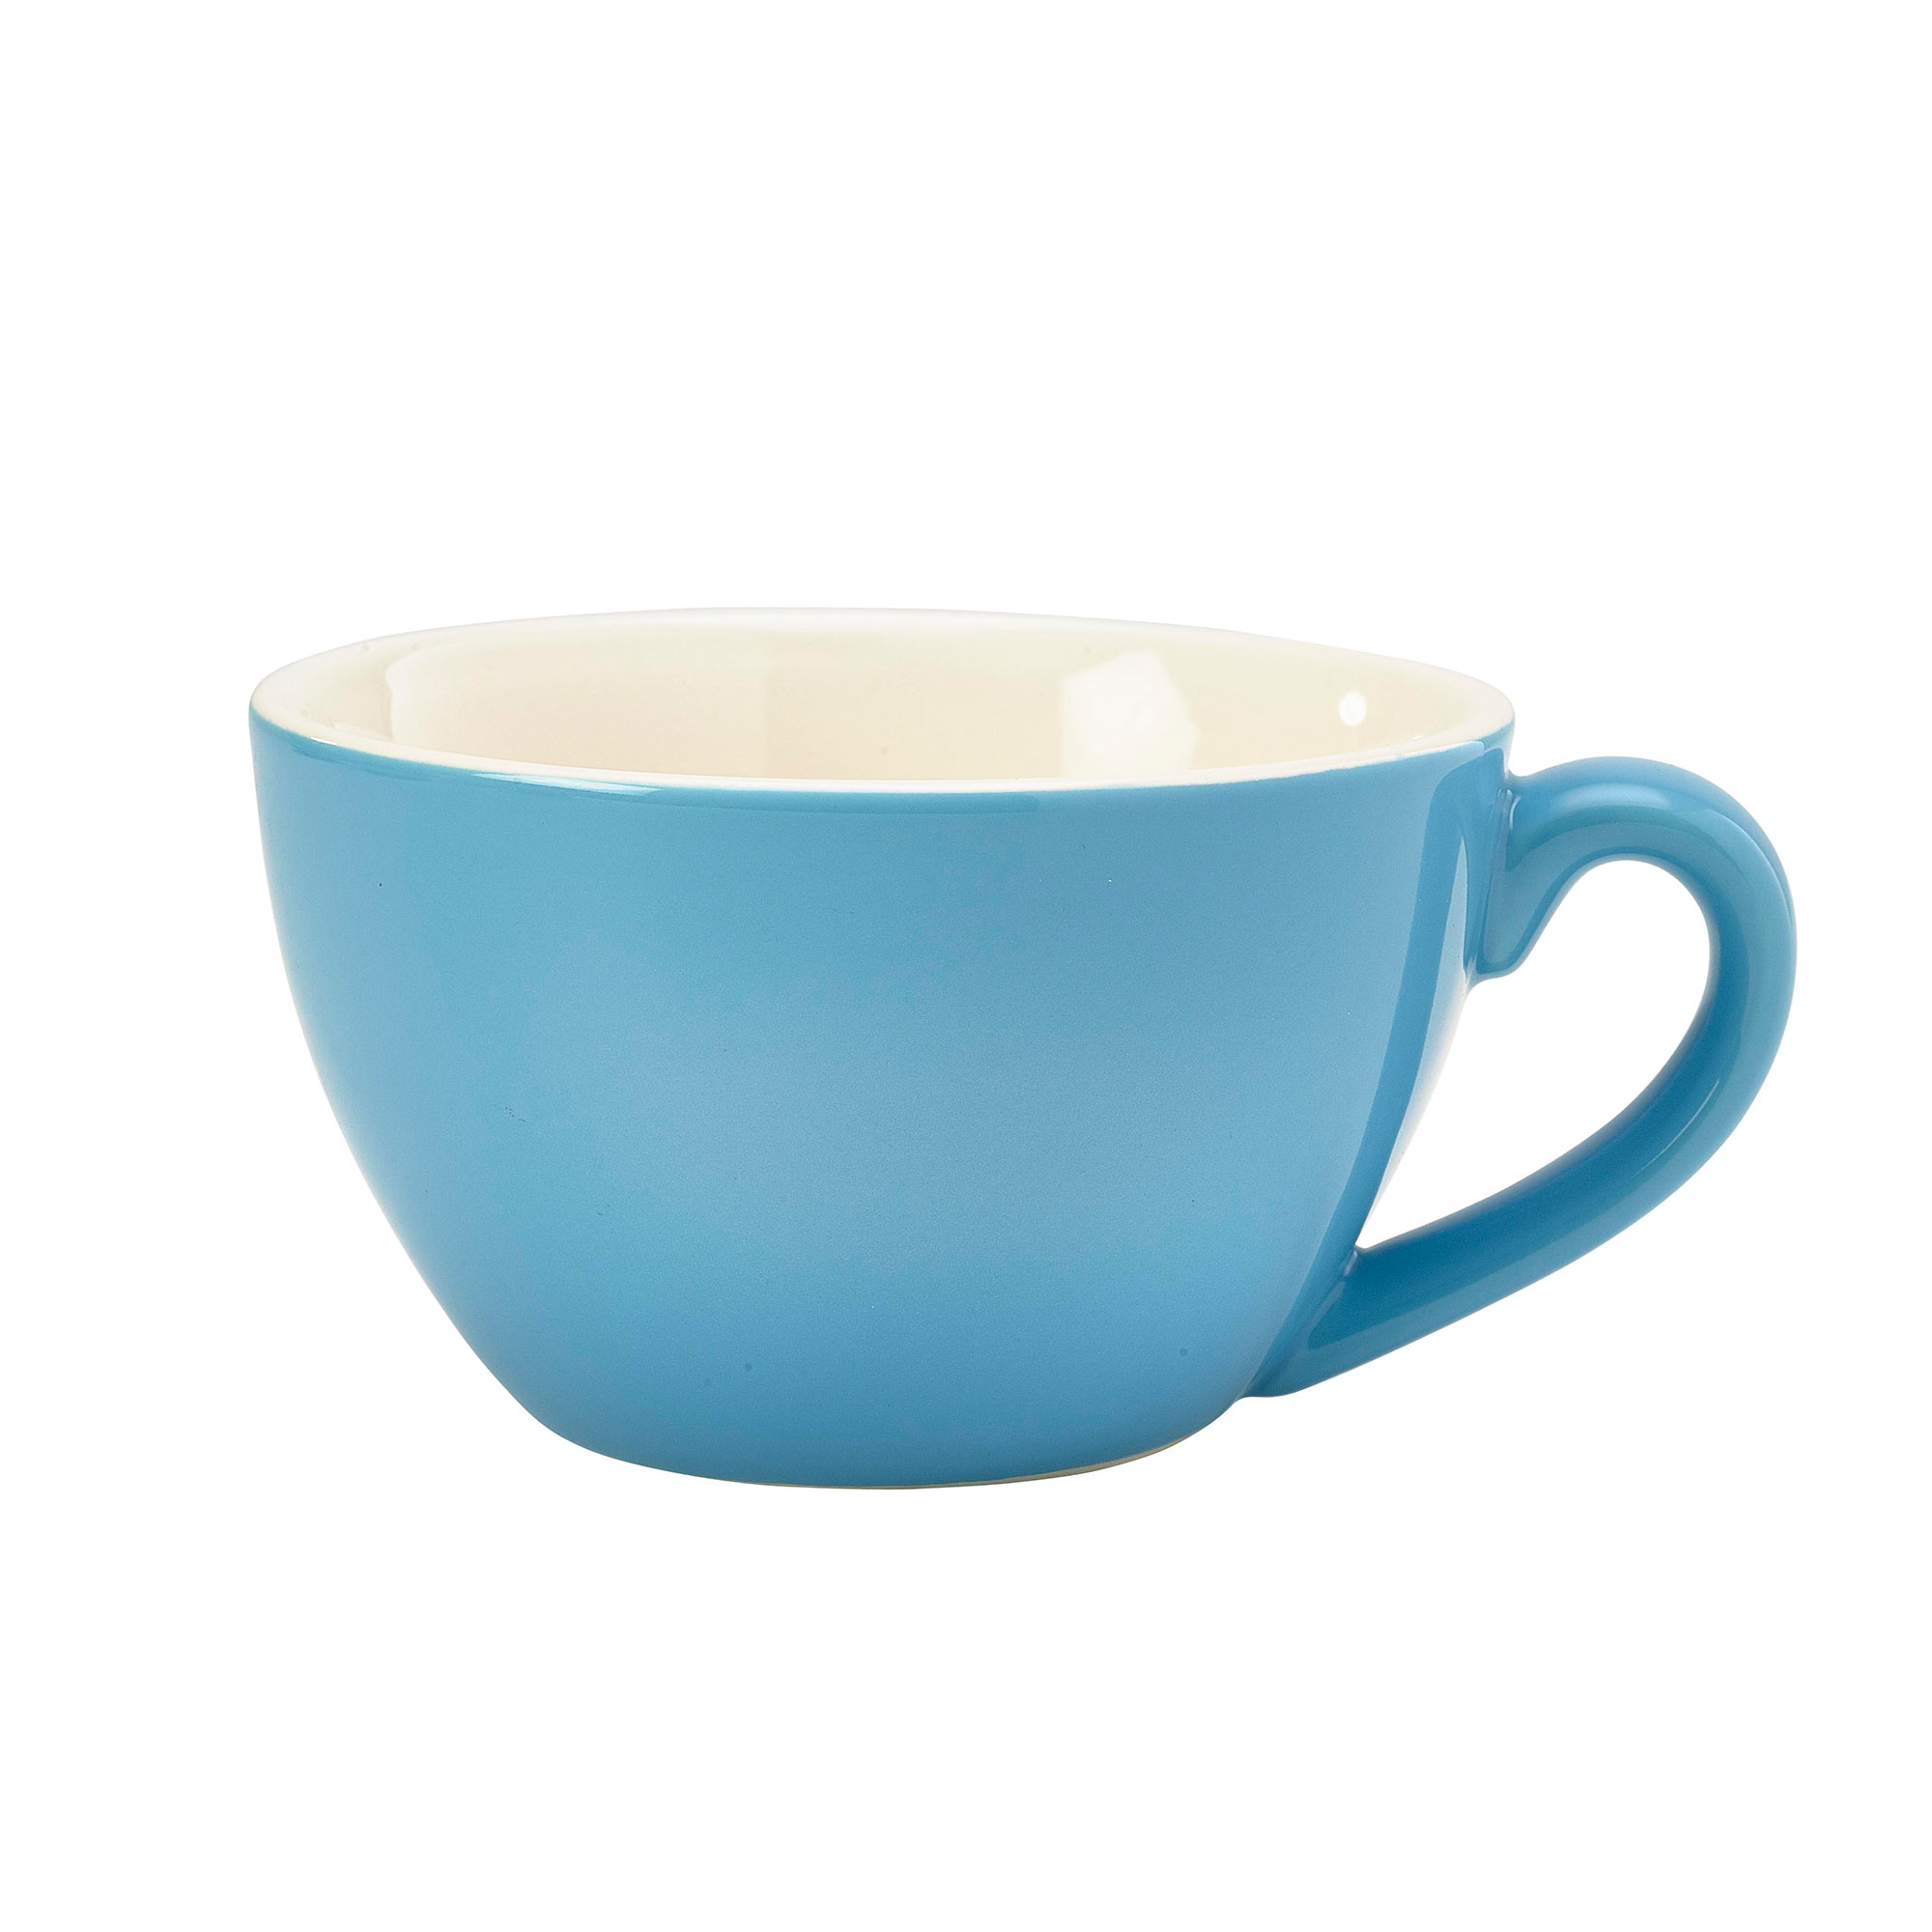 Pics Of Cupping: Blue Royal Genware Coffee Cup 340ml At Drinkstuff